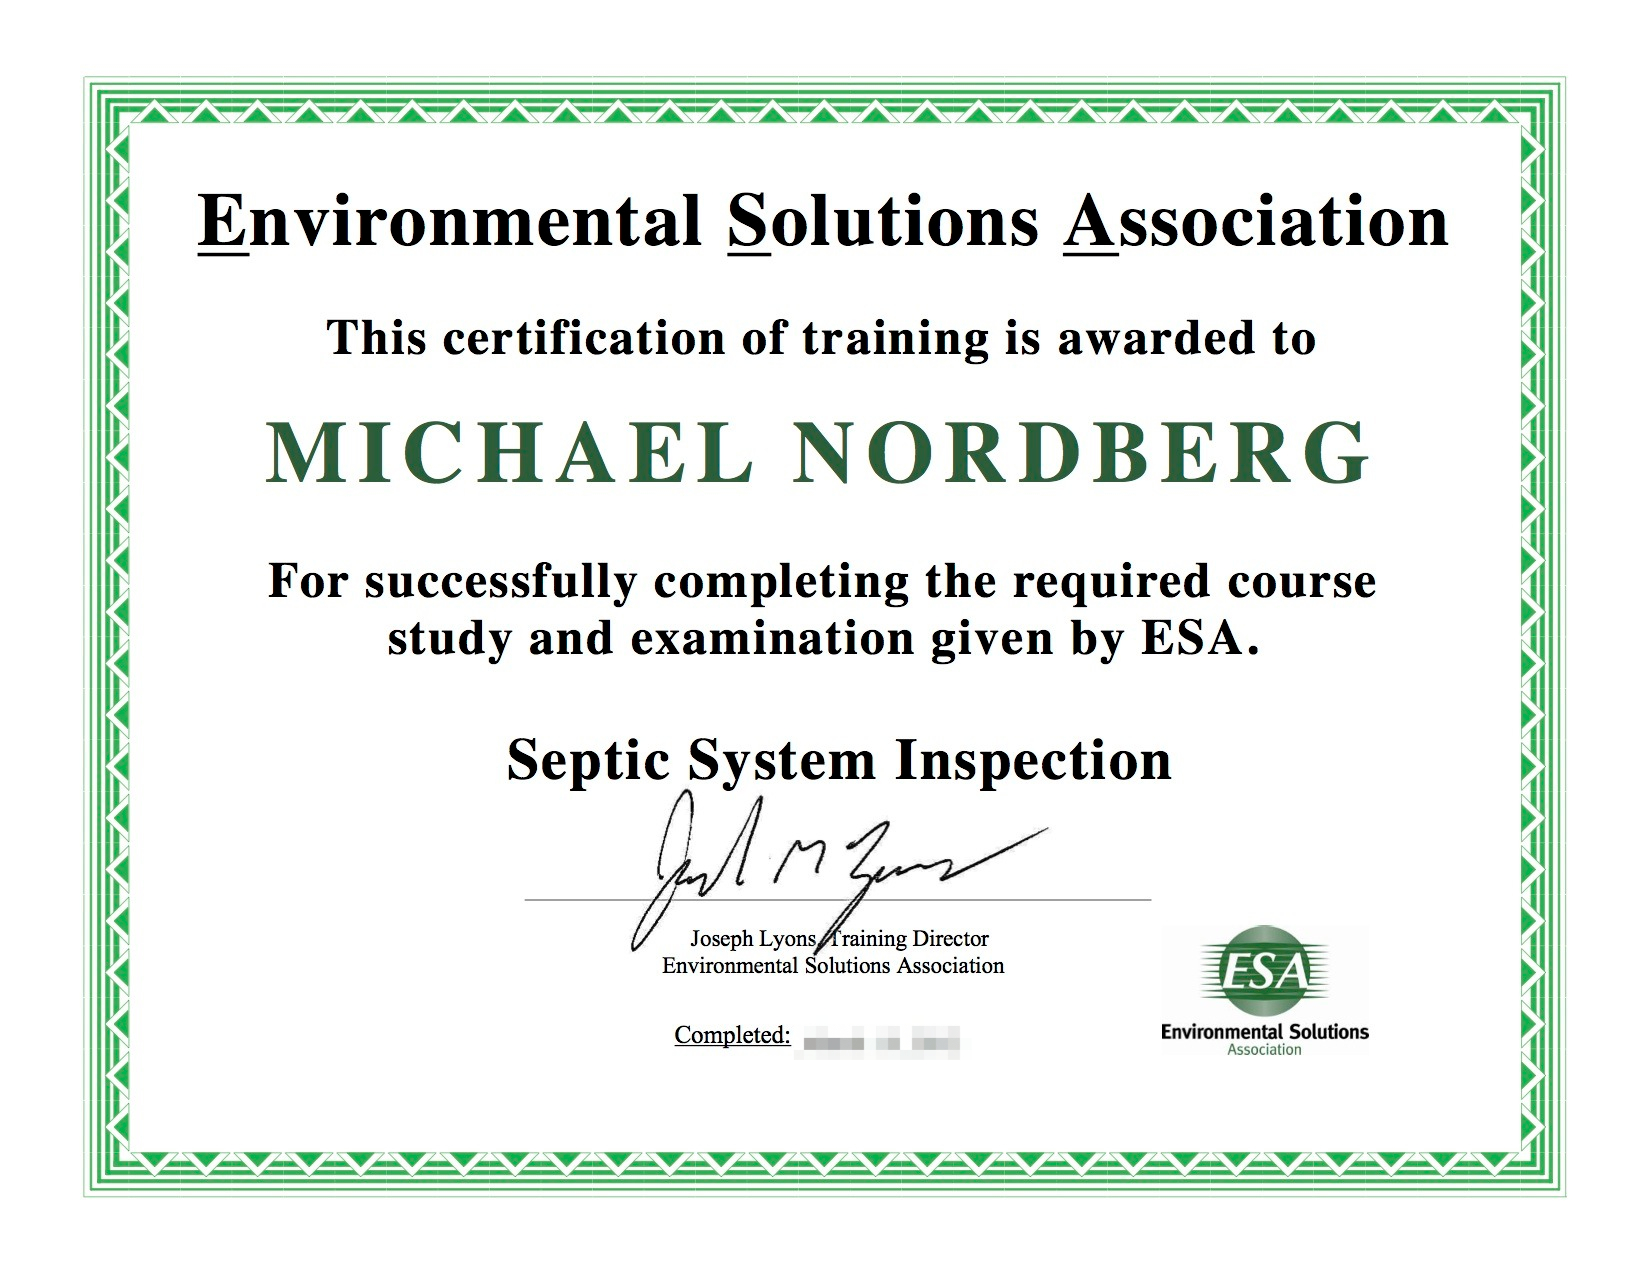 Michael Nordberg Septic System Inspection Cert.jpeg